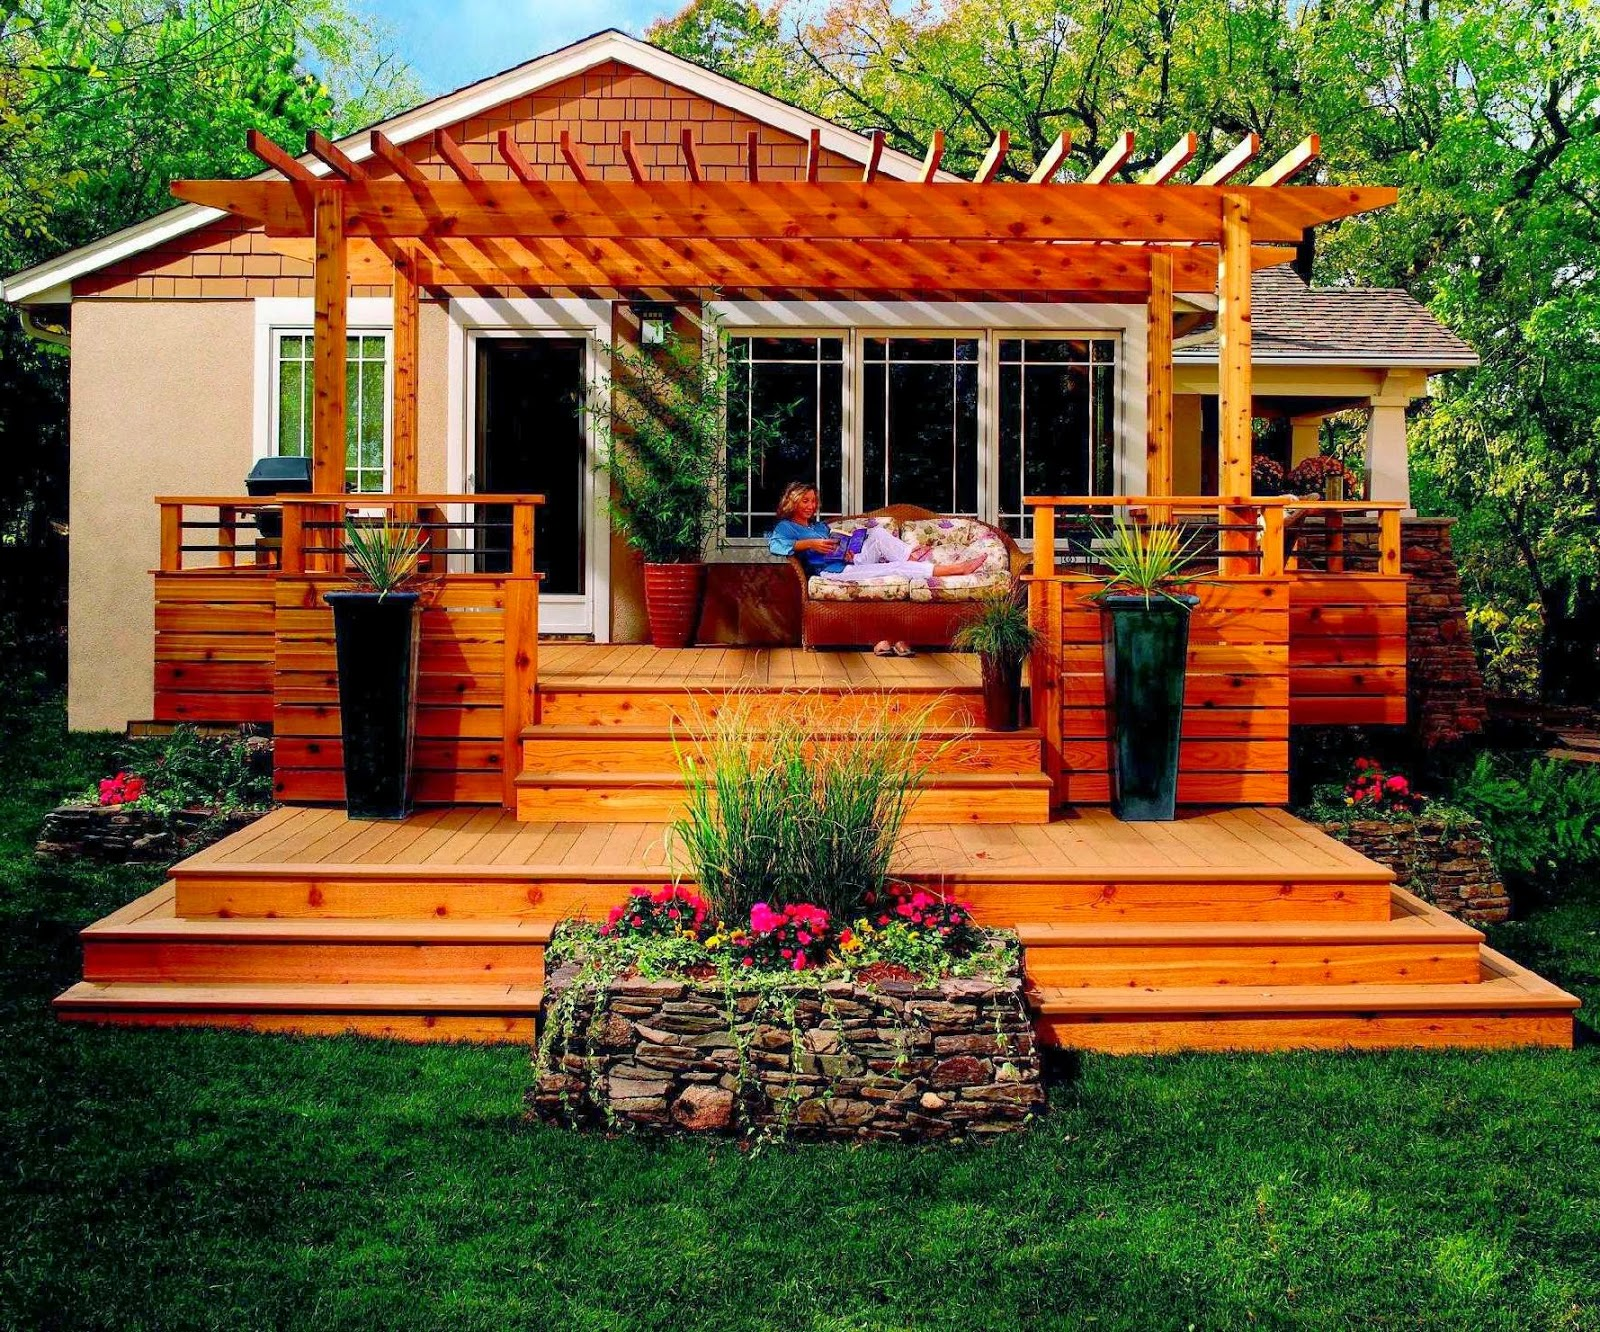 Awesome backyard deck design for Backyard decks